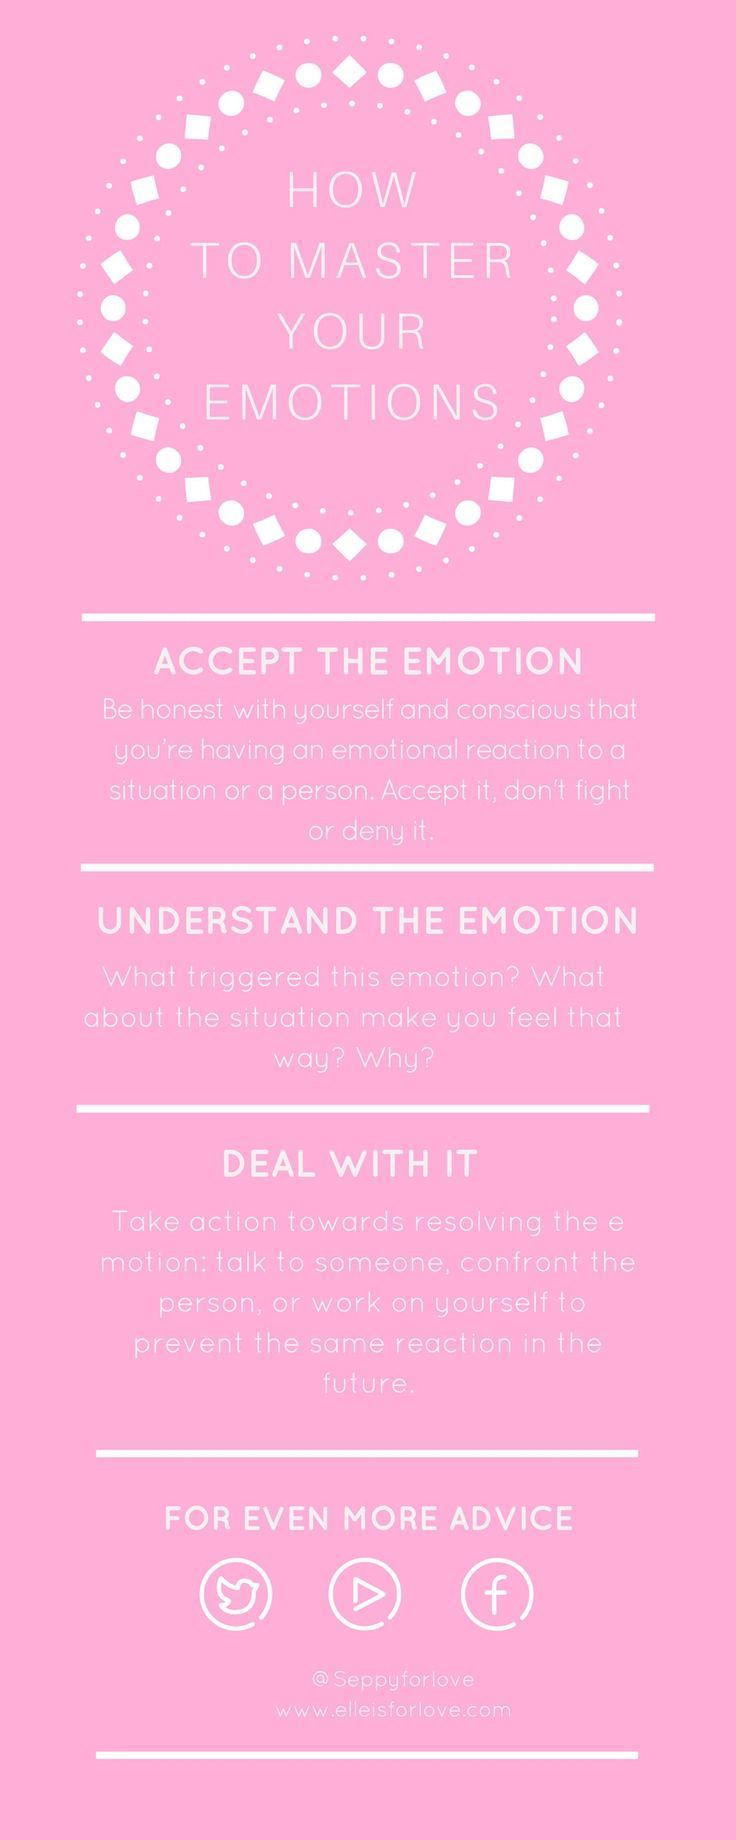 How to master your emotions in 3 steps group board and blog how to master your emotions in 3 easy steps because you should feel in control fandeluxe Gallery